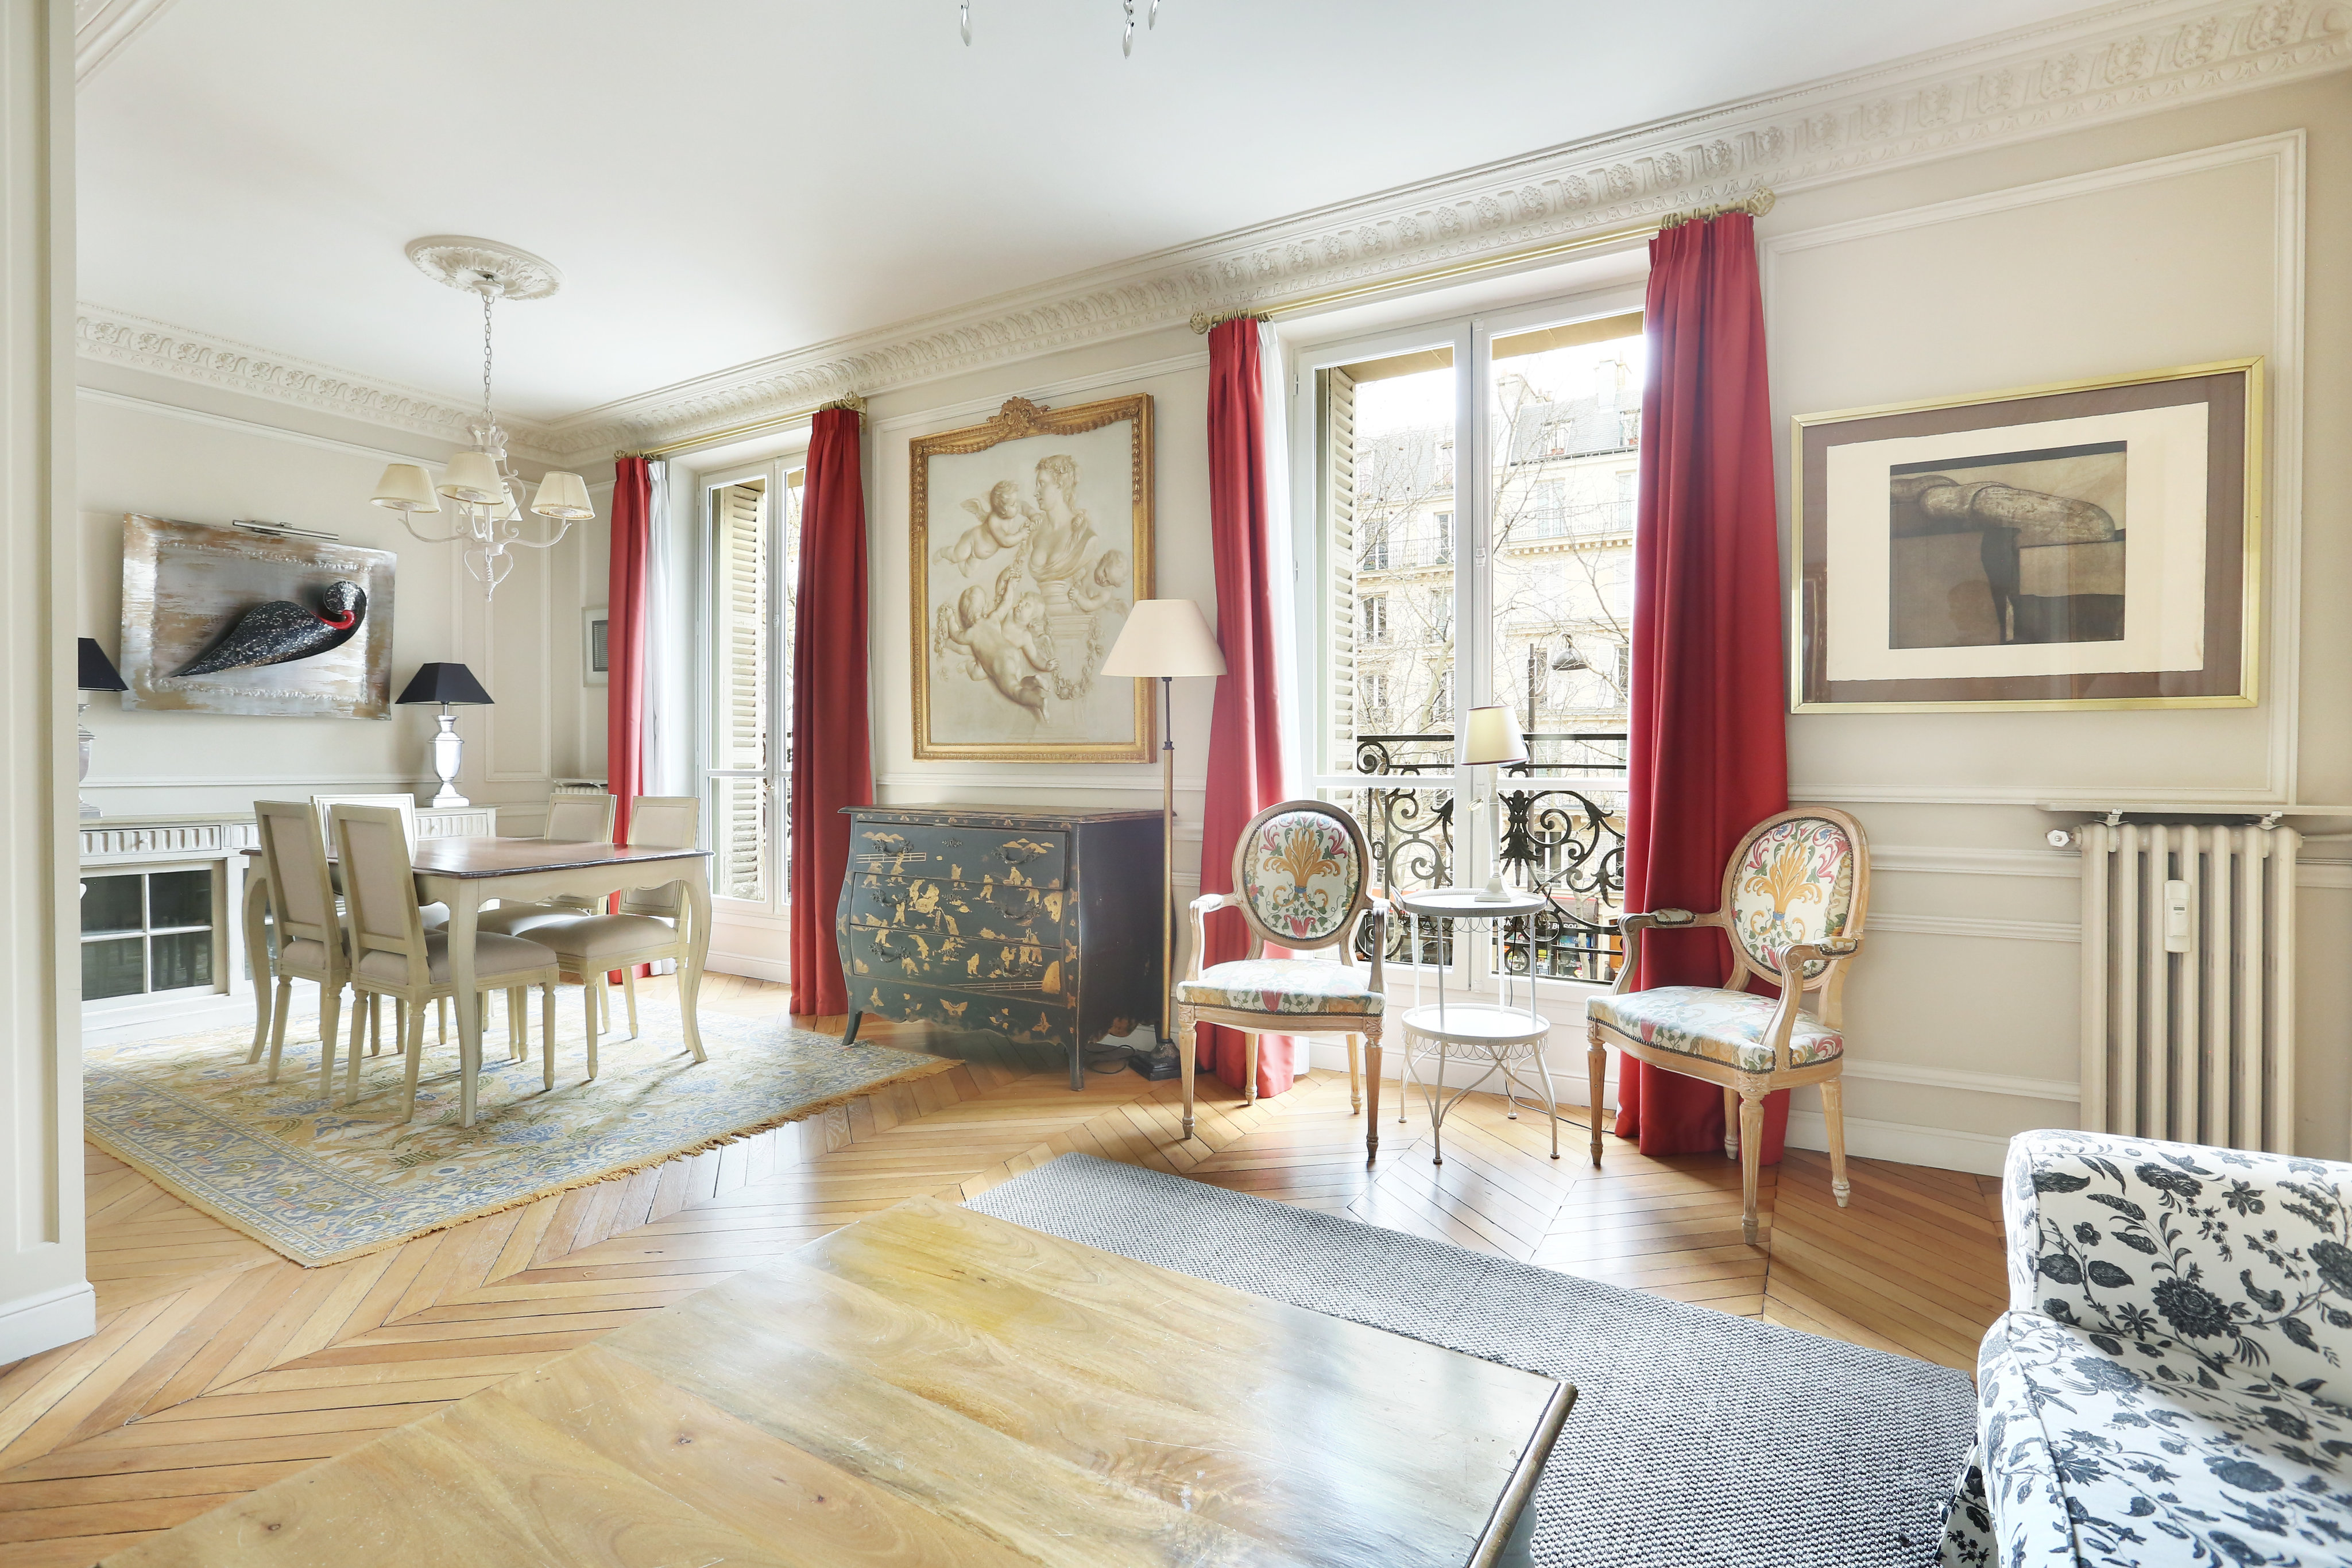 Residence/Apartment for Rent at Paris 7th District – In the prestigious Gros Caillou area between the Eiffel Tower and les Invalides - Avenue Bosquet Paris, Paris,75007 France